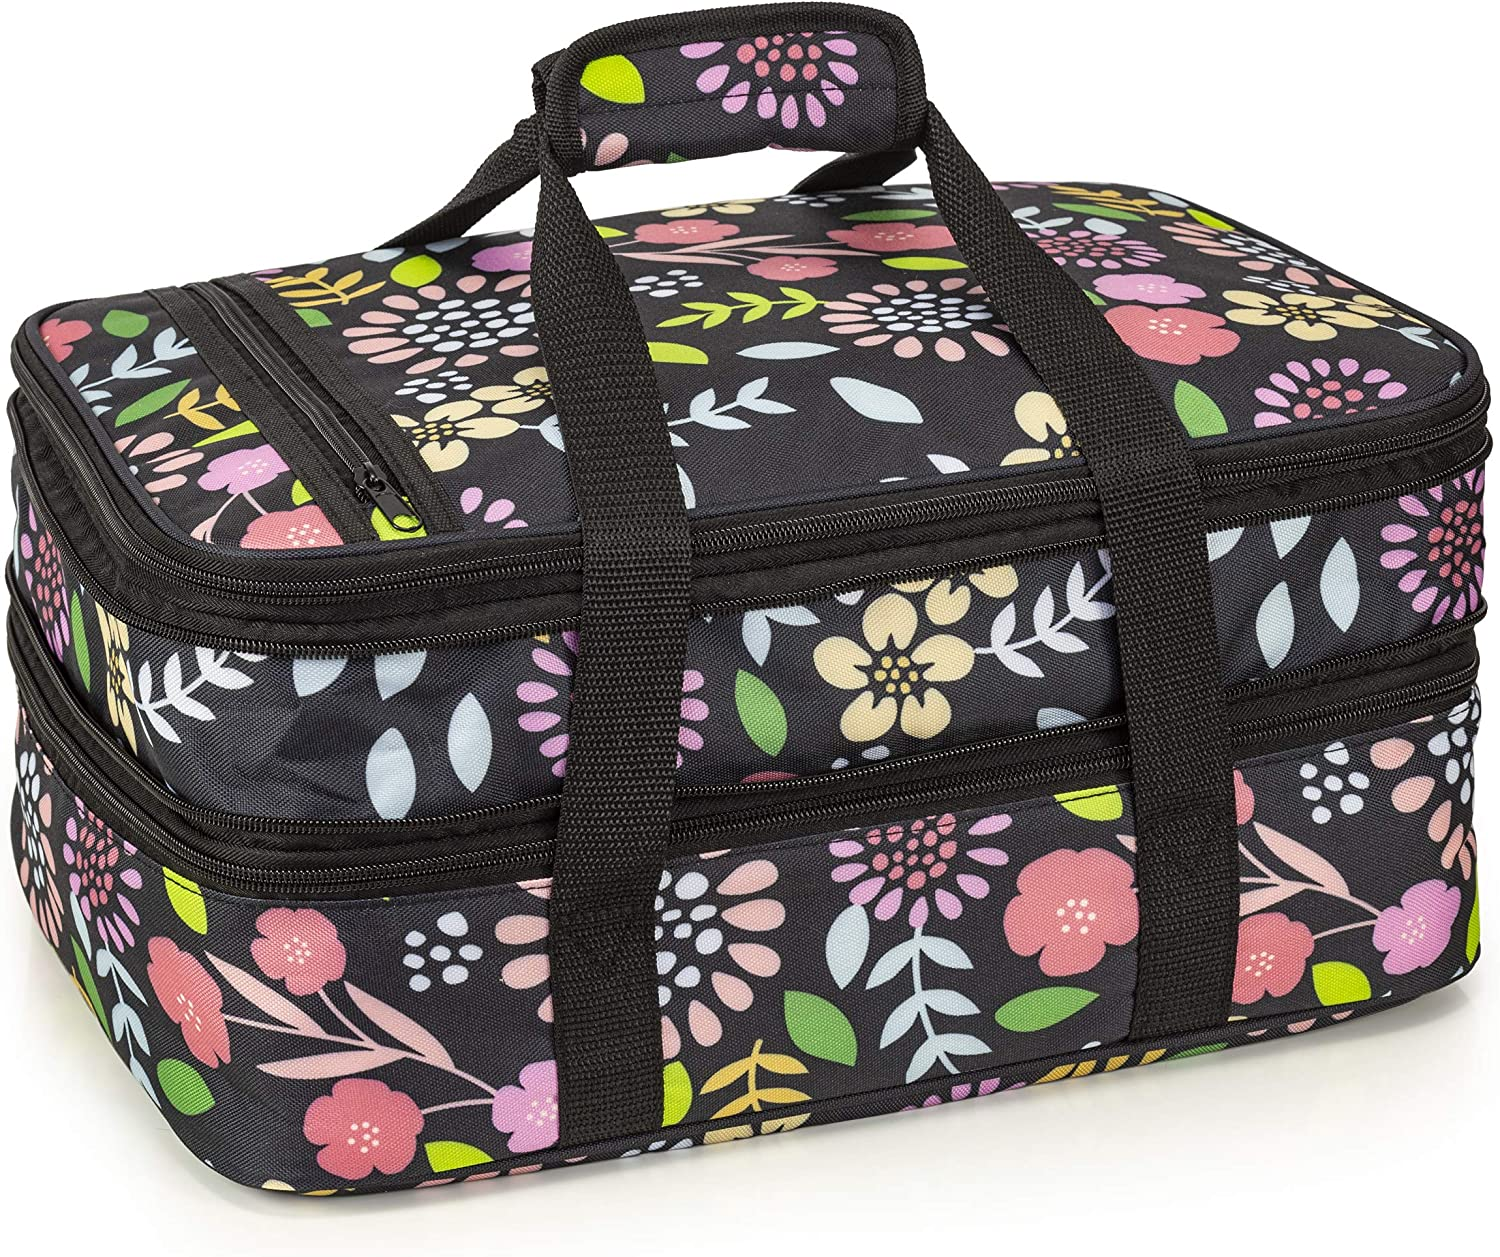 VP Home Double Casserole Insulated Travel Carry Bag (Garden Party)